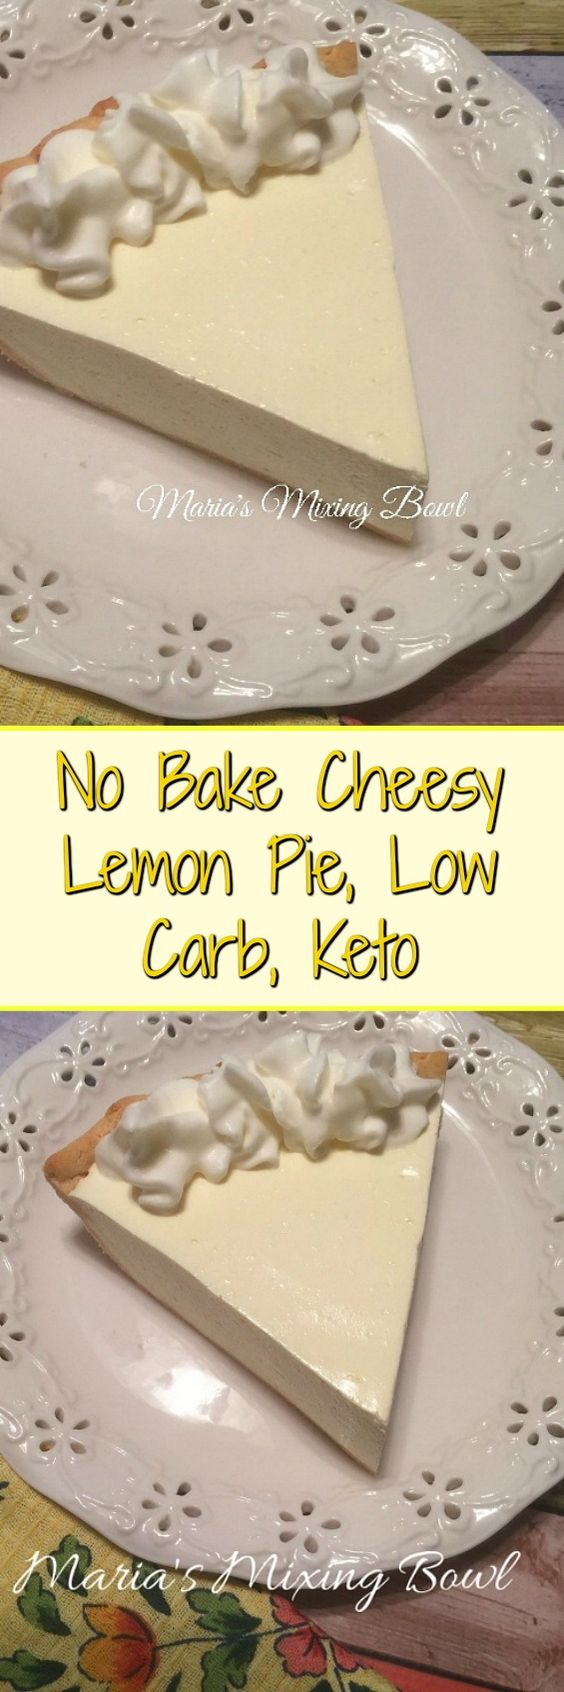 No Bake Cheesy Lemon Pie - sweet and lemony and so easy to make and really delicious. Even the non low carbers love this pie